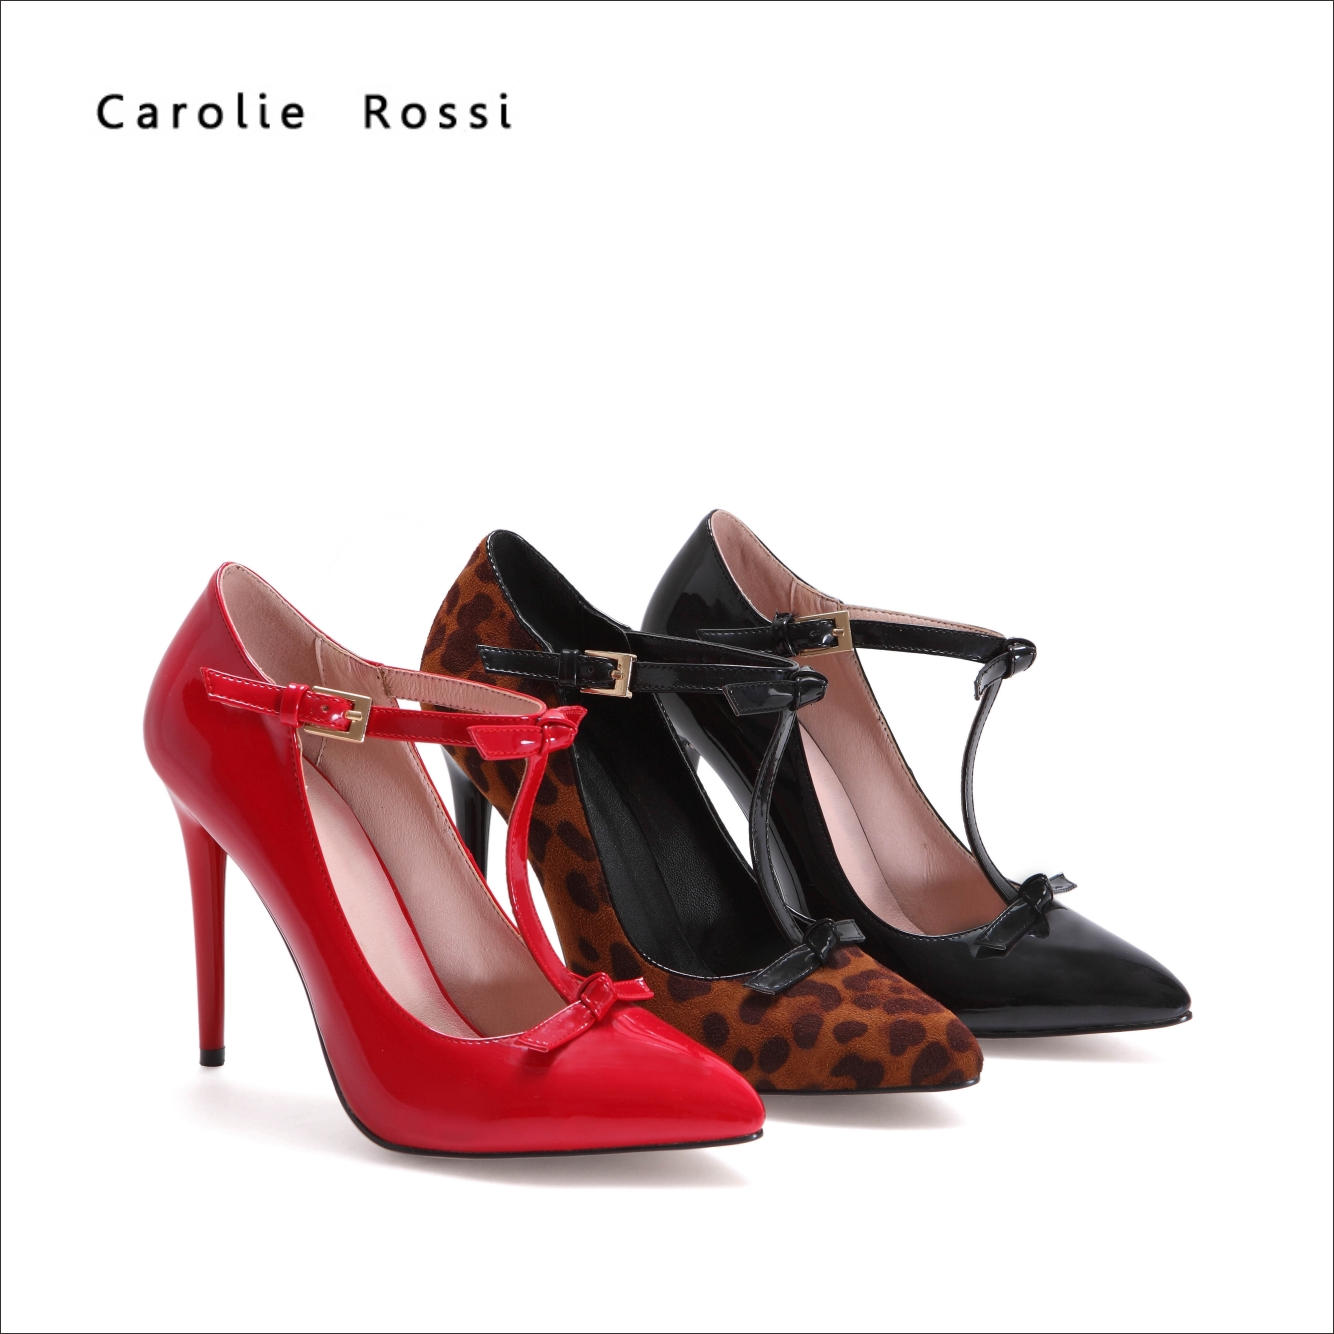 carolie rossi dress shoes pic